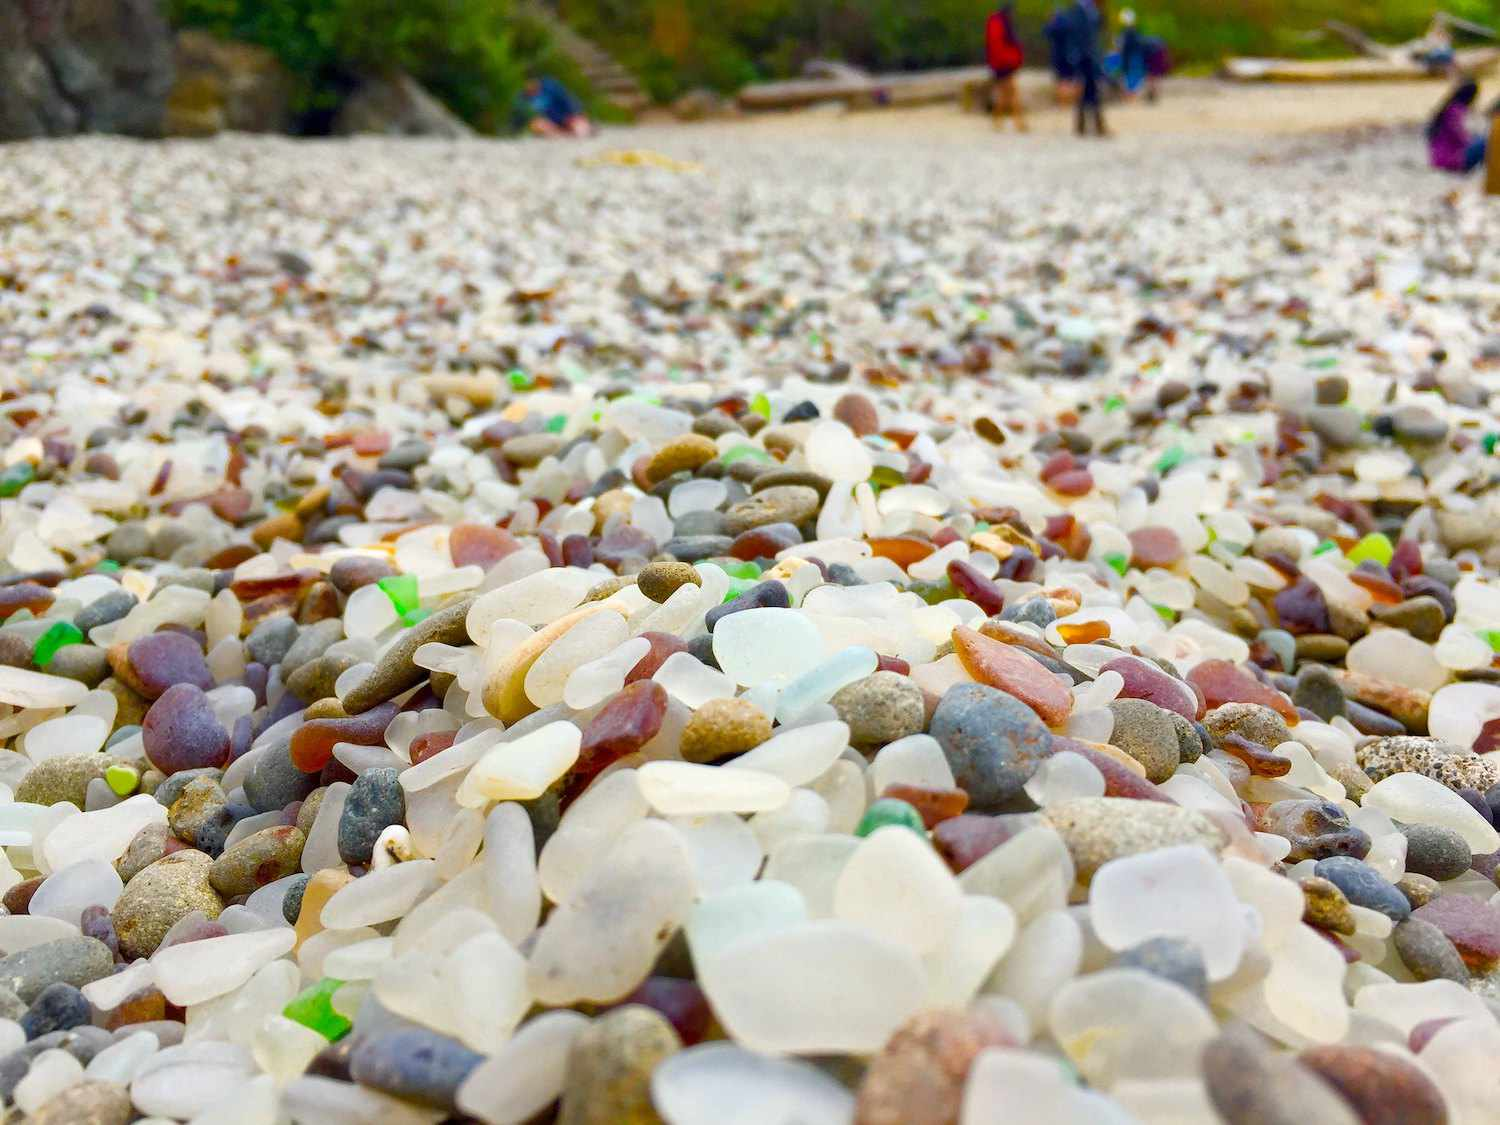 A closeup of small, smooth rocks and glass on Glass Beach in California